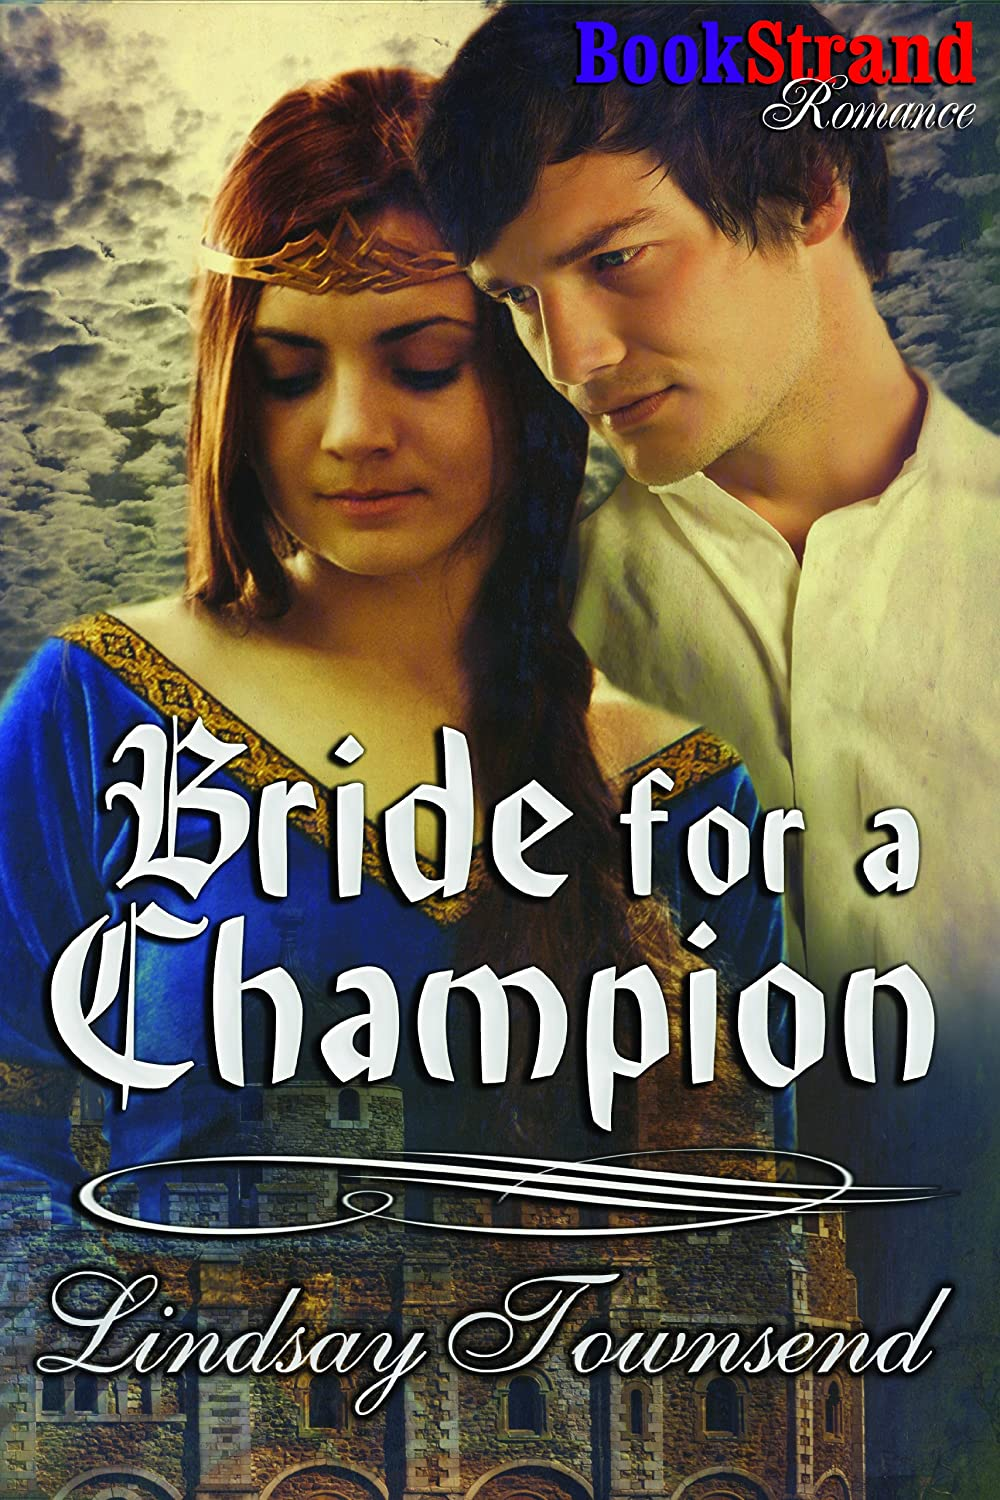 Bride for a Champion by Lindsay Townsend